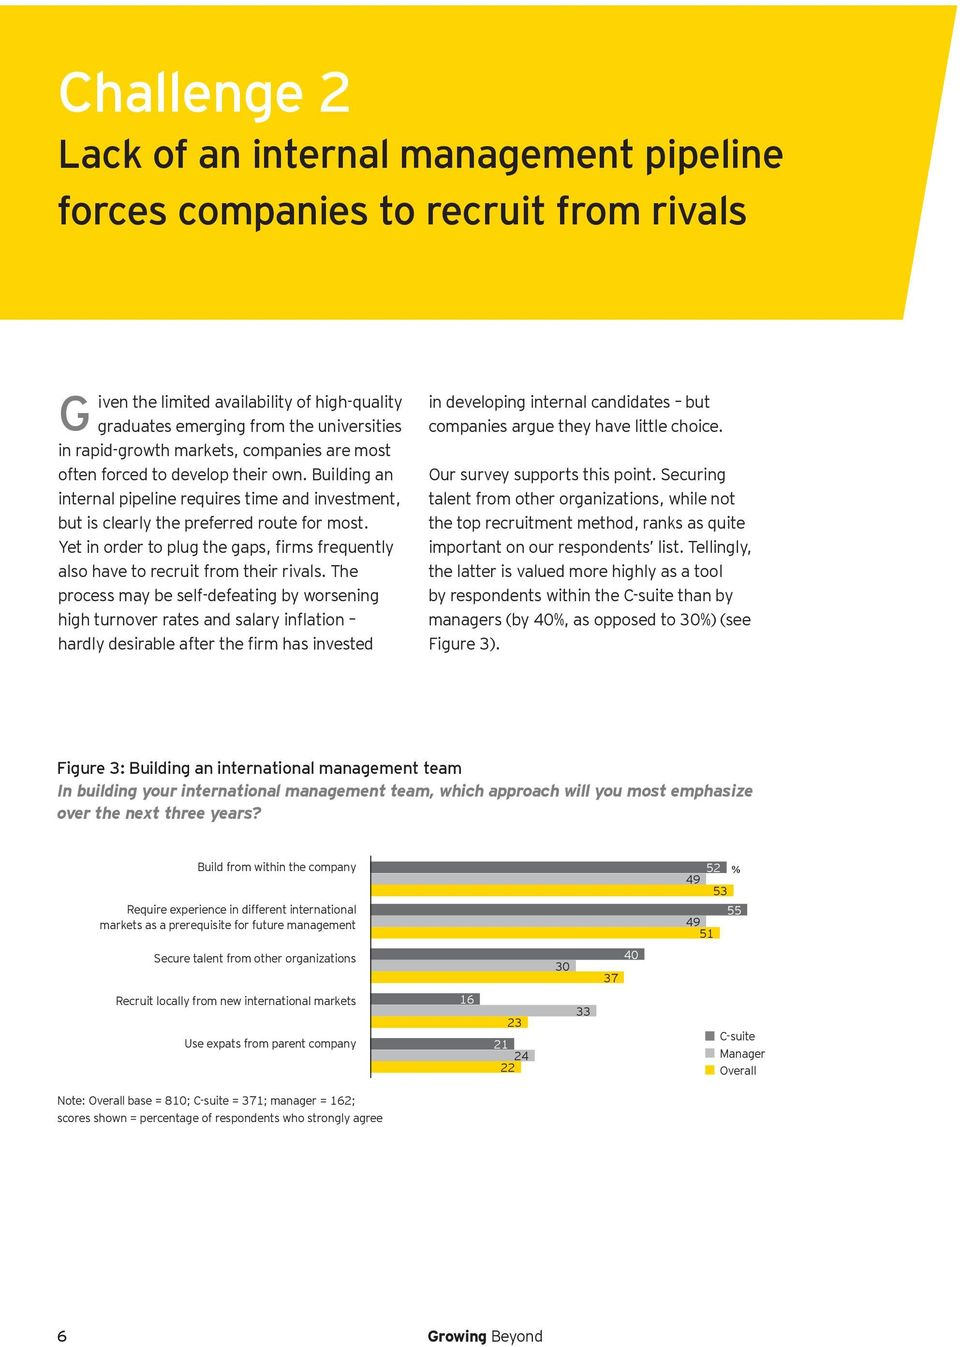 Yet in order to plug the gaps, firms frequently also have to recruit from their rivals.